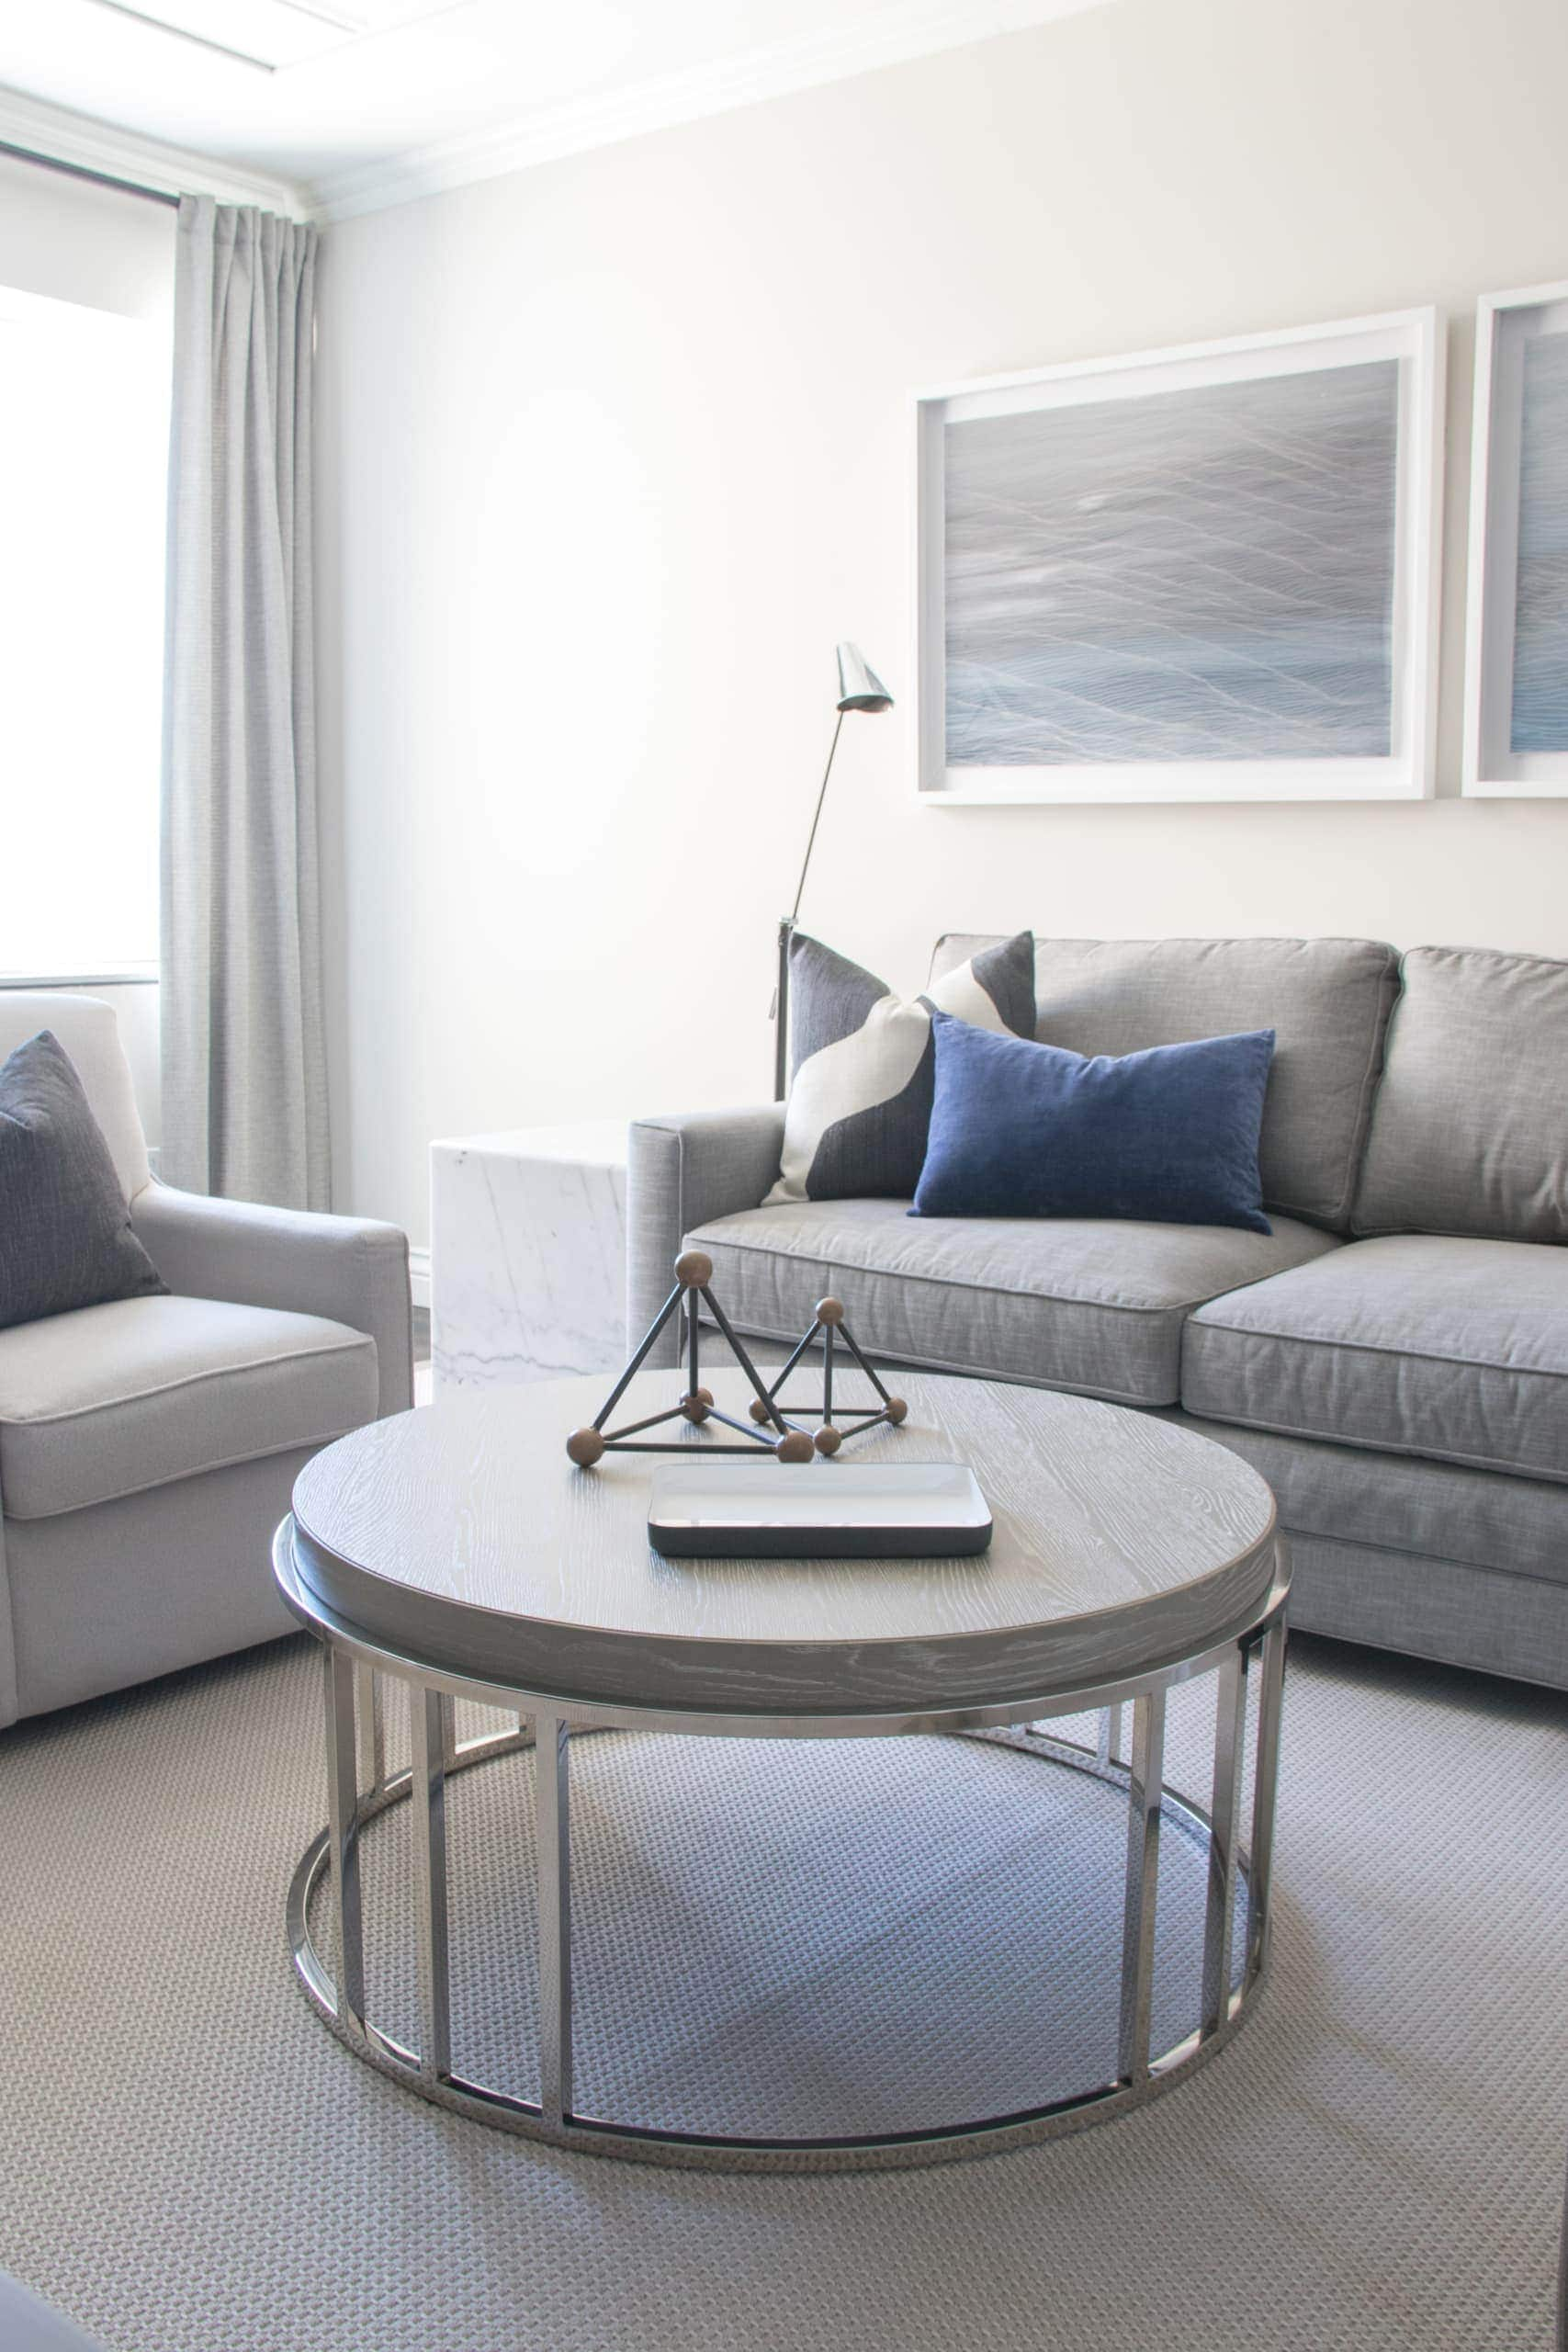 Circular, gray coffee table within a large living room